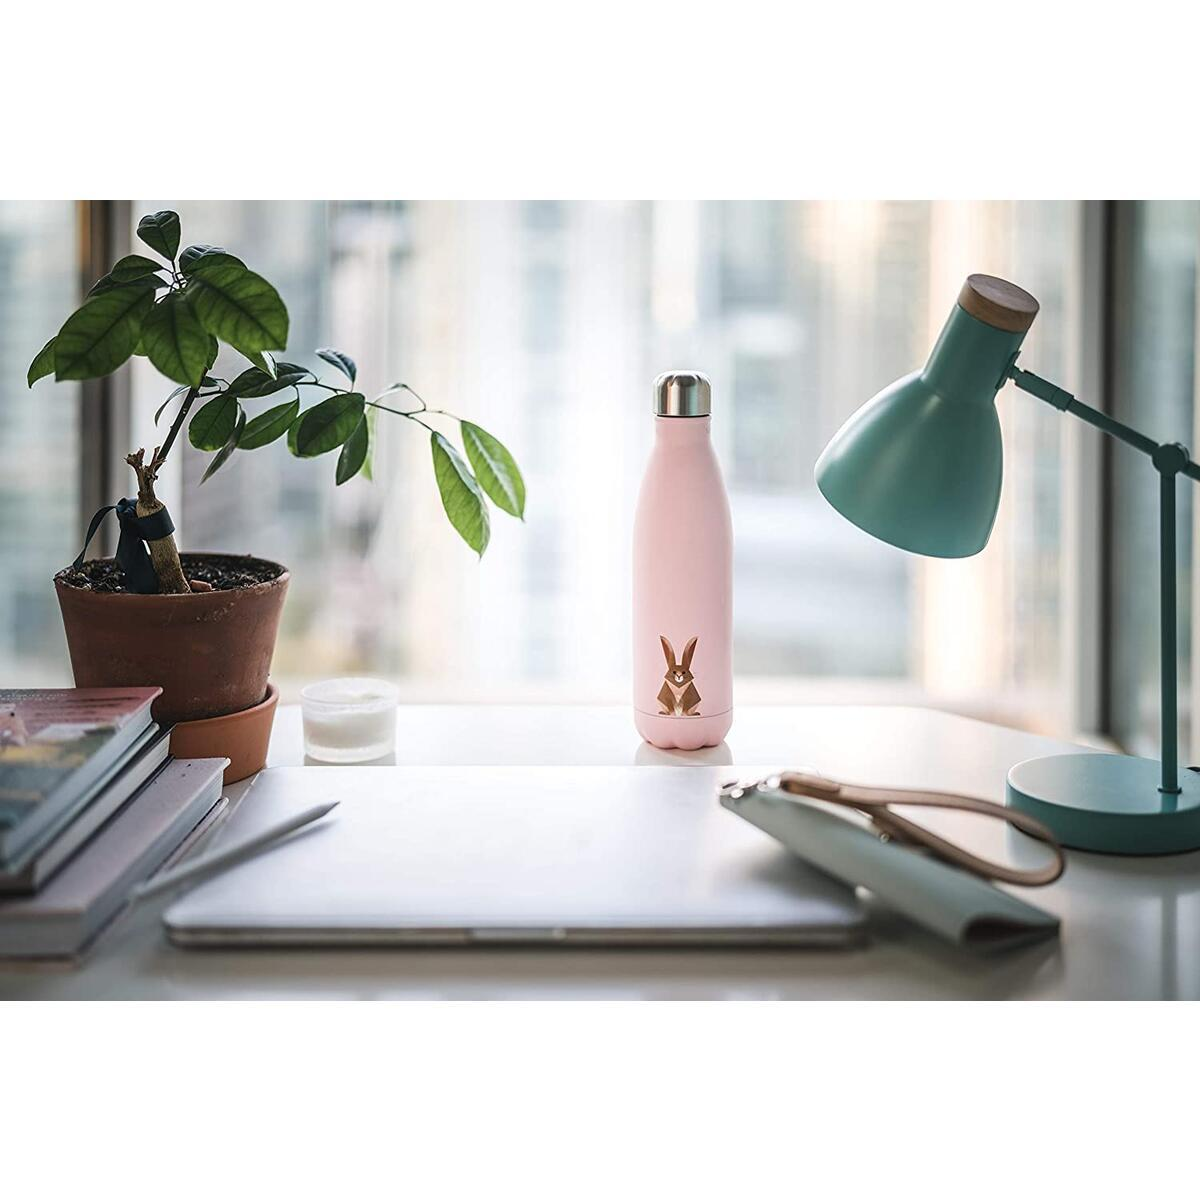 smållo   Water Bottle with Cute Bunny Design   Stainless Steel   Double Wall Insulated   Pink   17oz